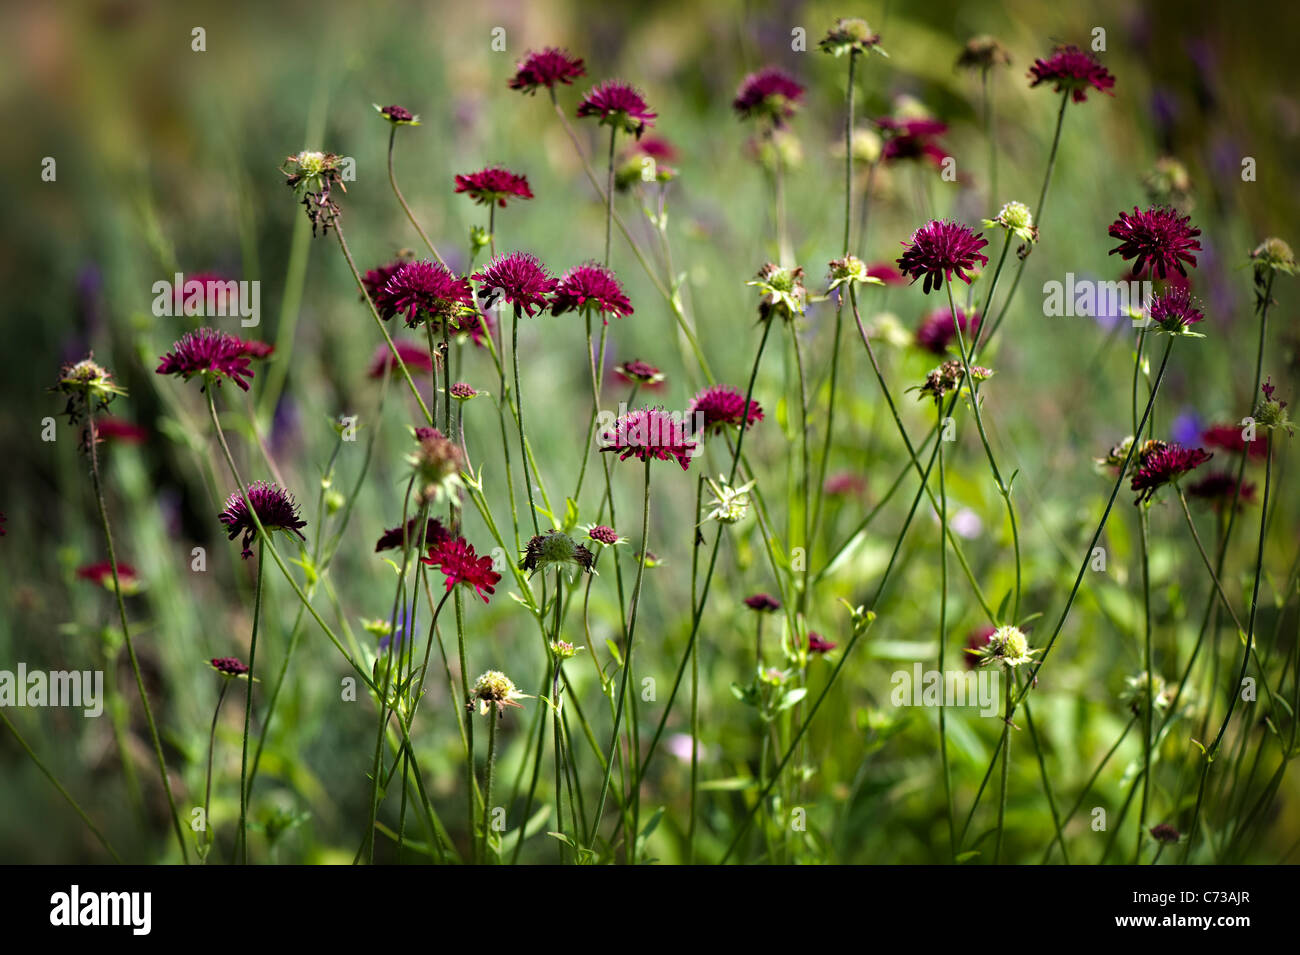 The delicate flowers of Scabiosa atropurpurea also known as the mourningbride or sweet scabious flower, taken against - Stock Image